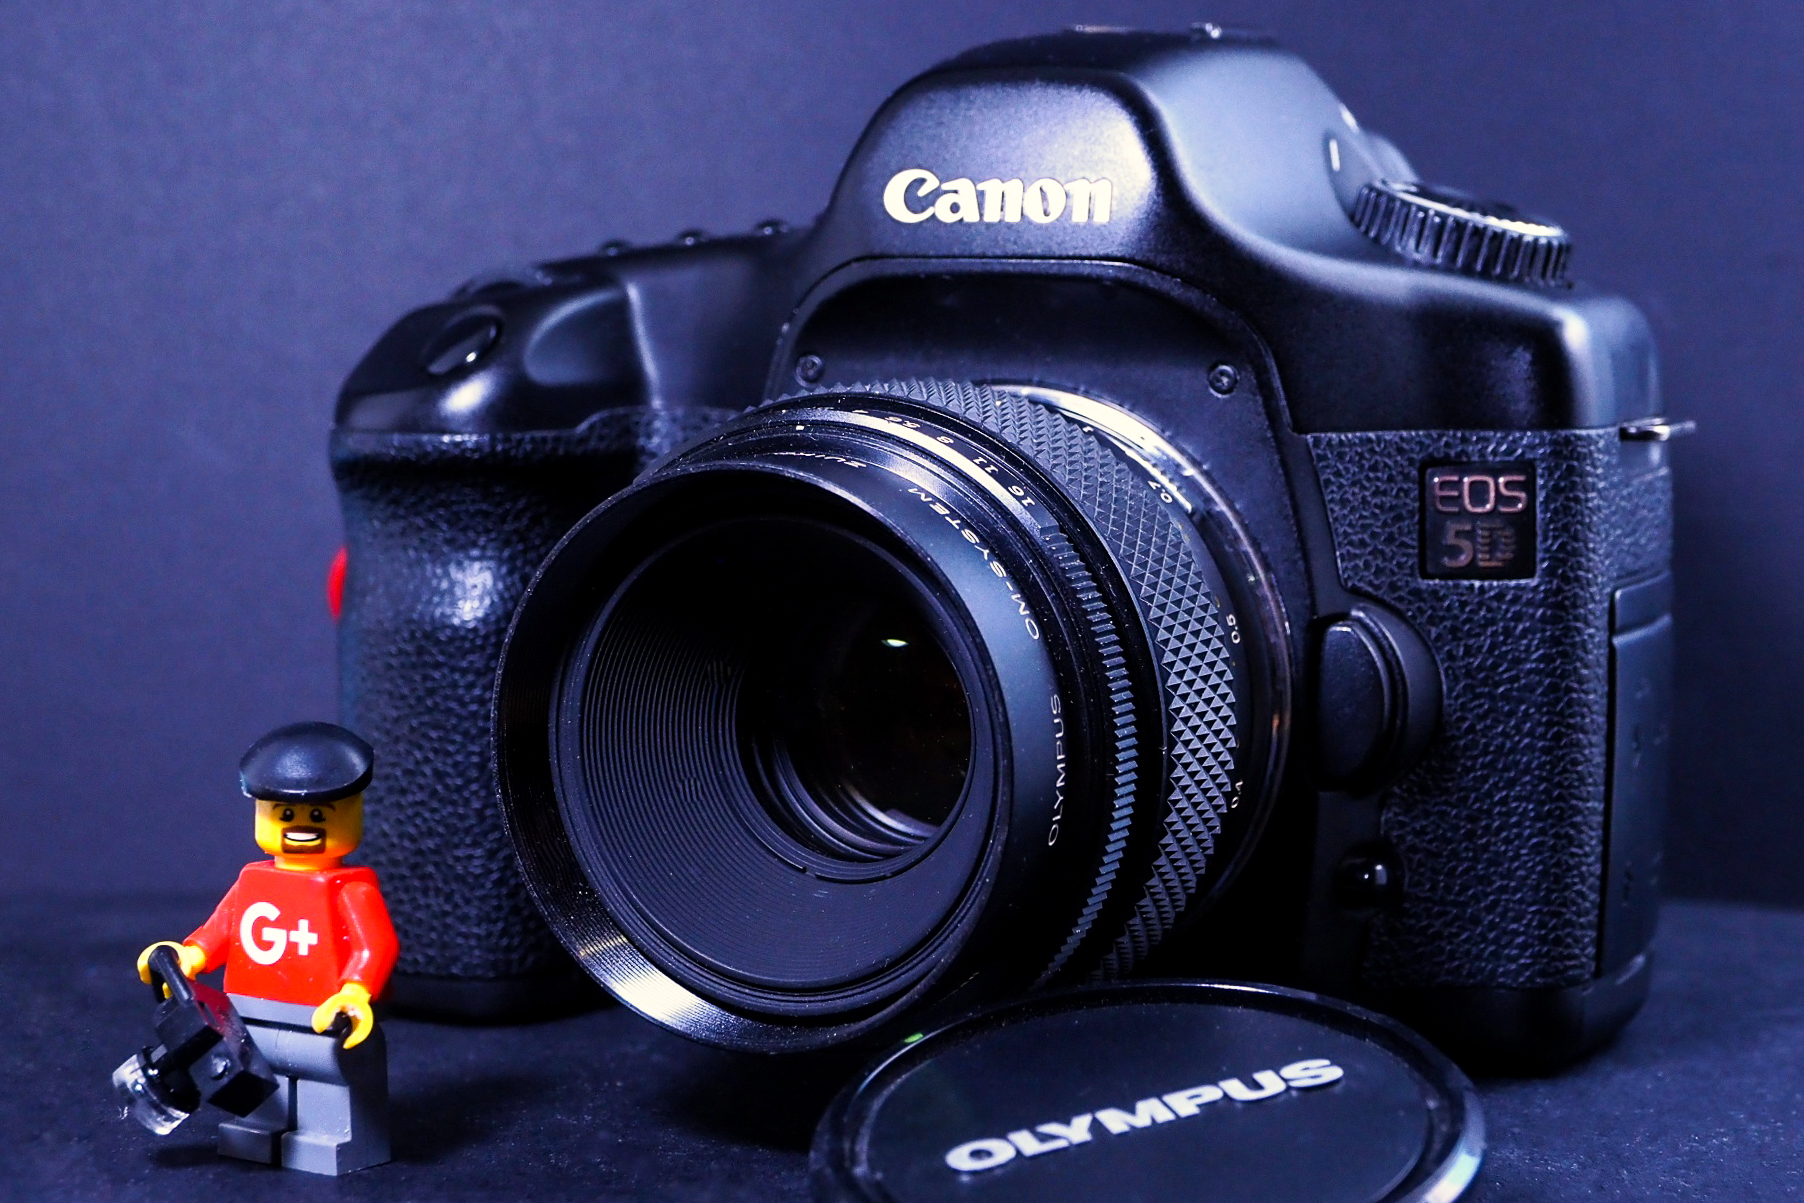 Canon 5D with a Zuiko OM mount 50mm f2.0 Macro